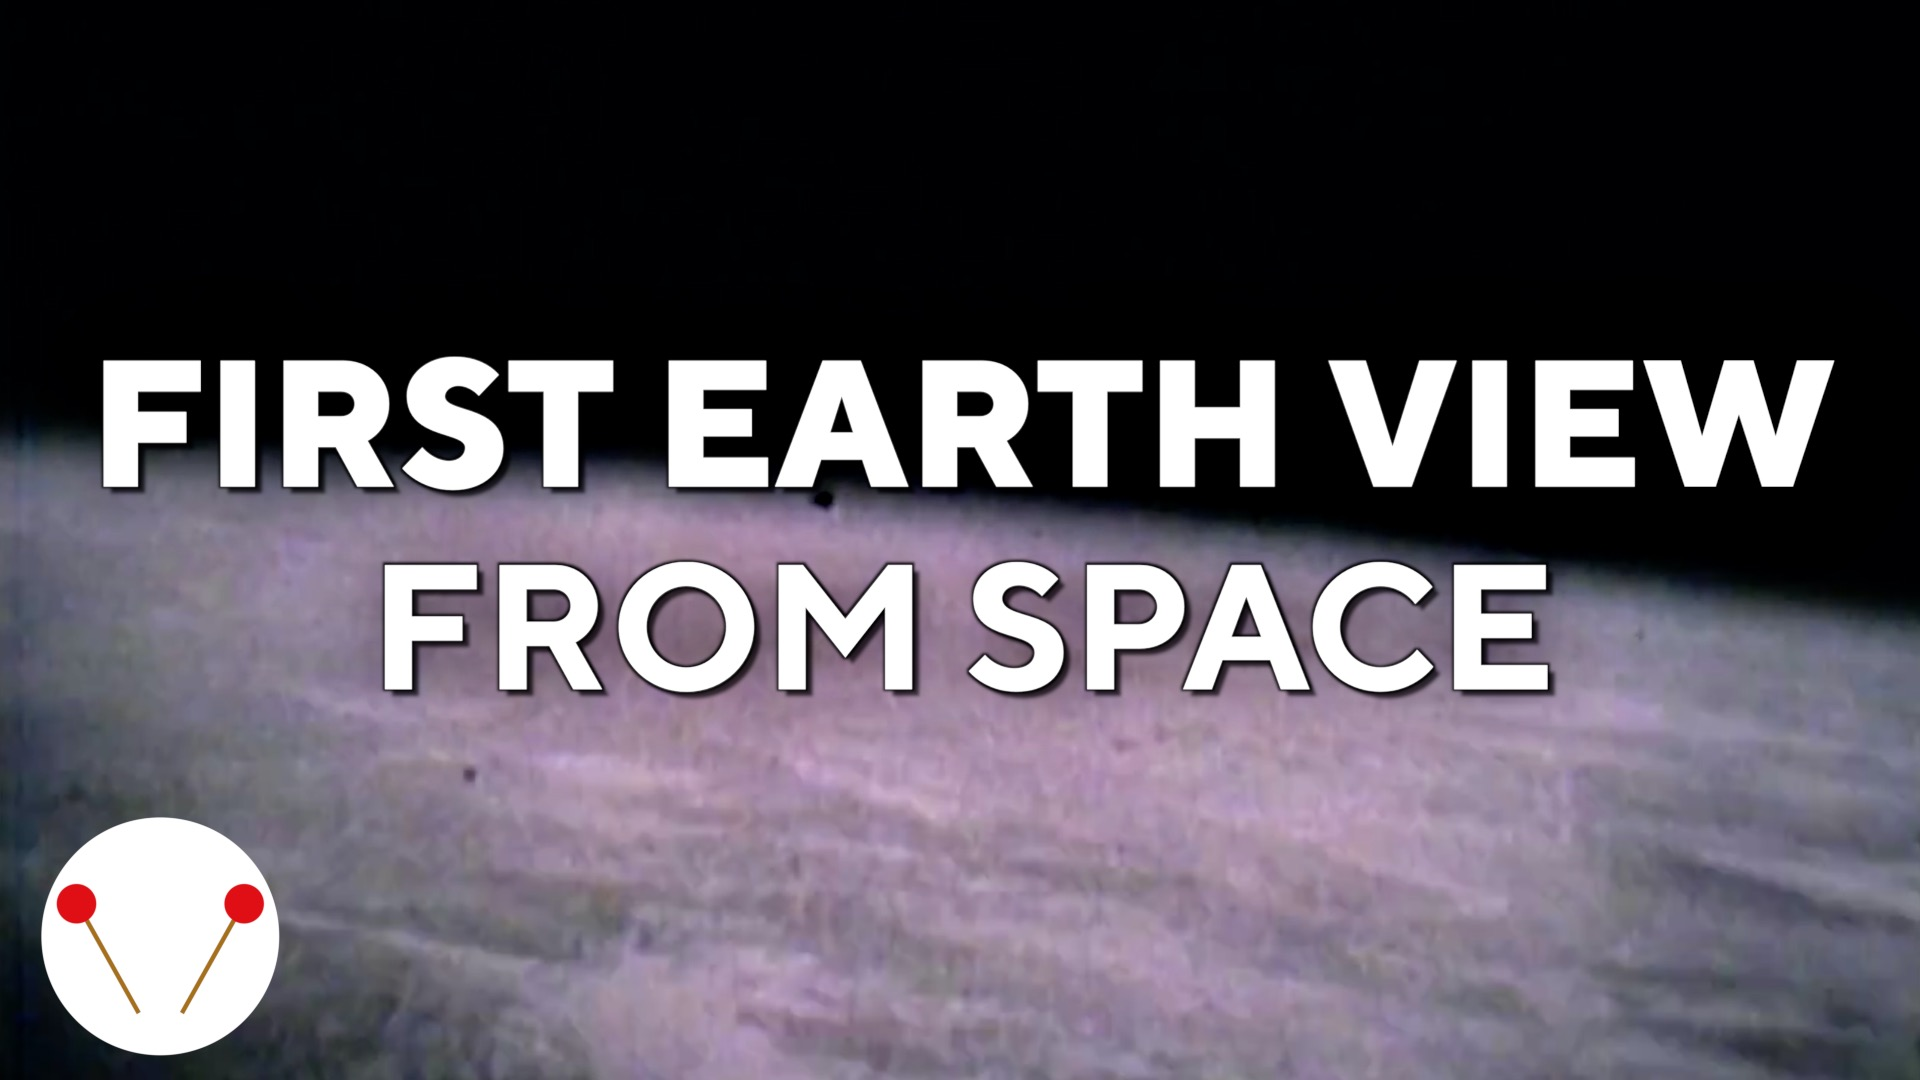 This first view of Earth from space was taken from a captured German missile #science